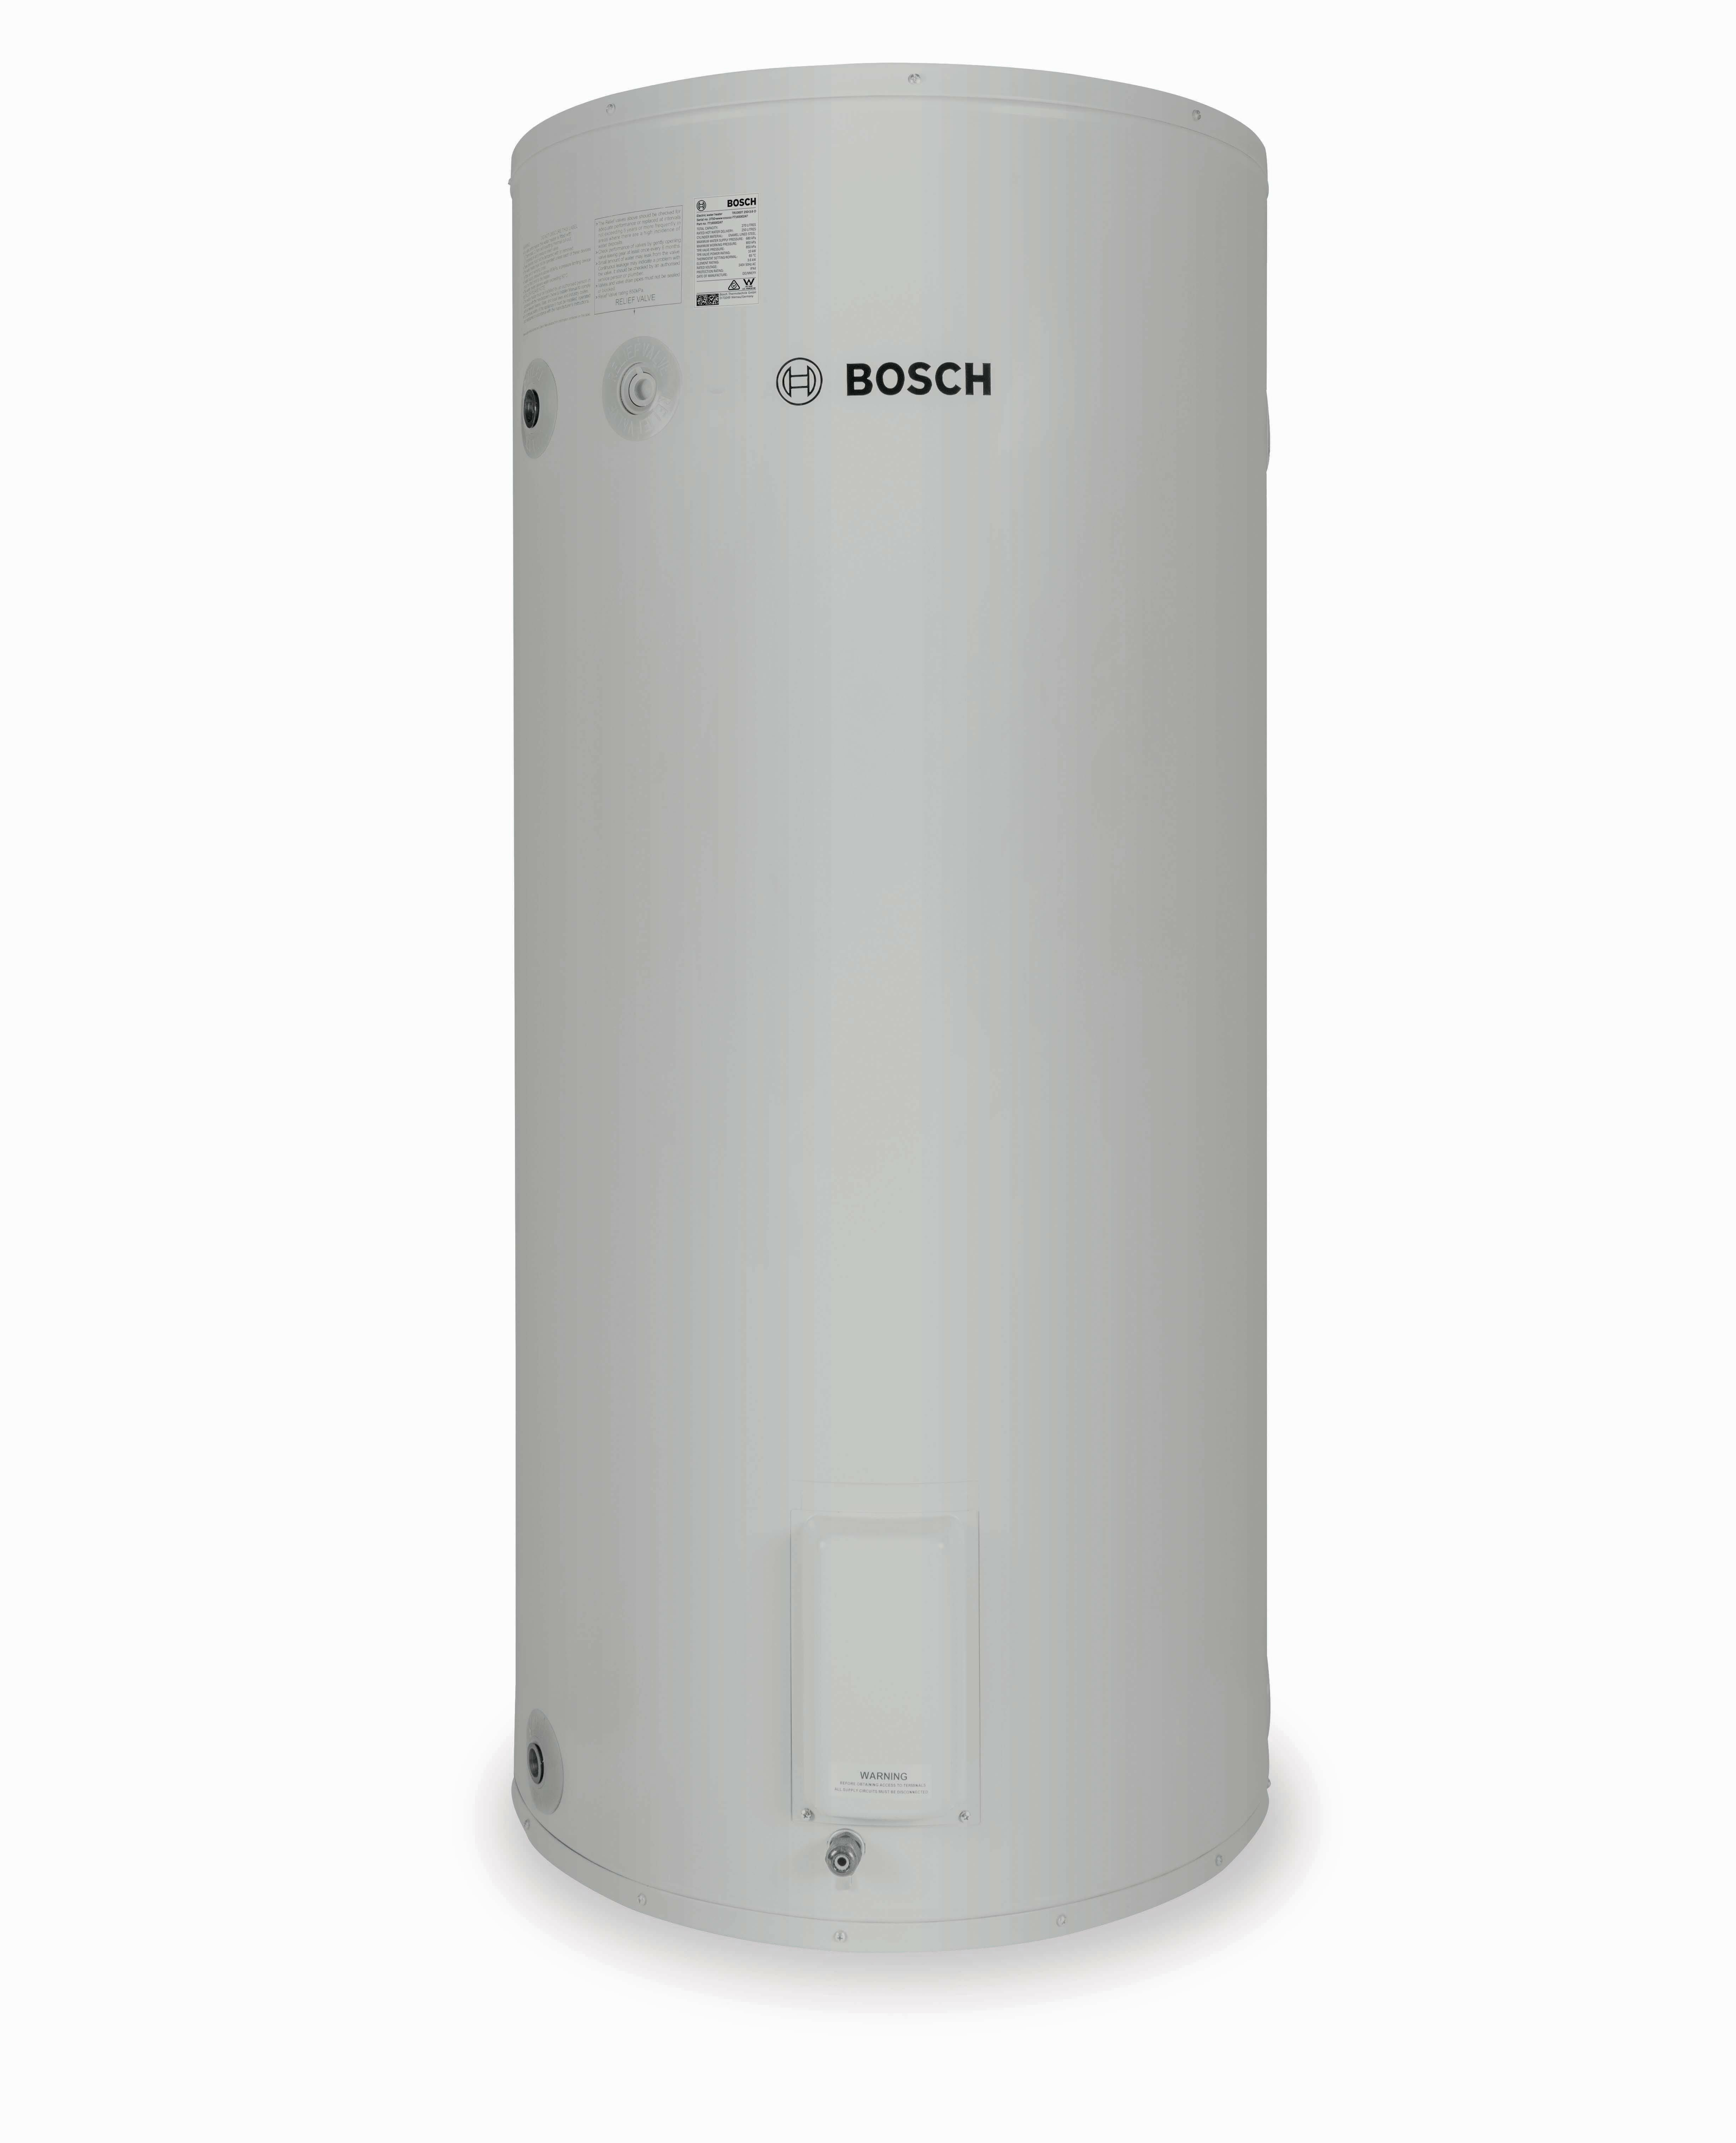 Bosch Hot Water Prices |Same Day Hot Water Service